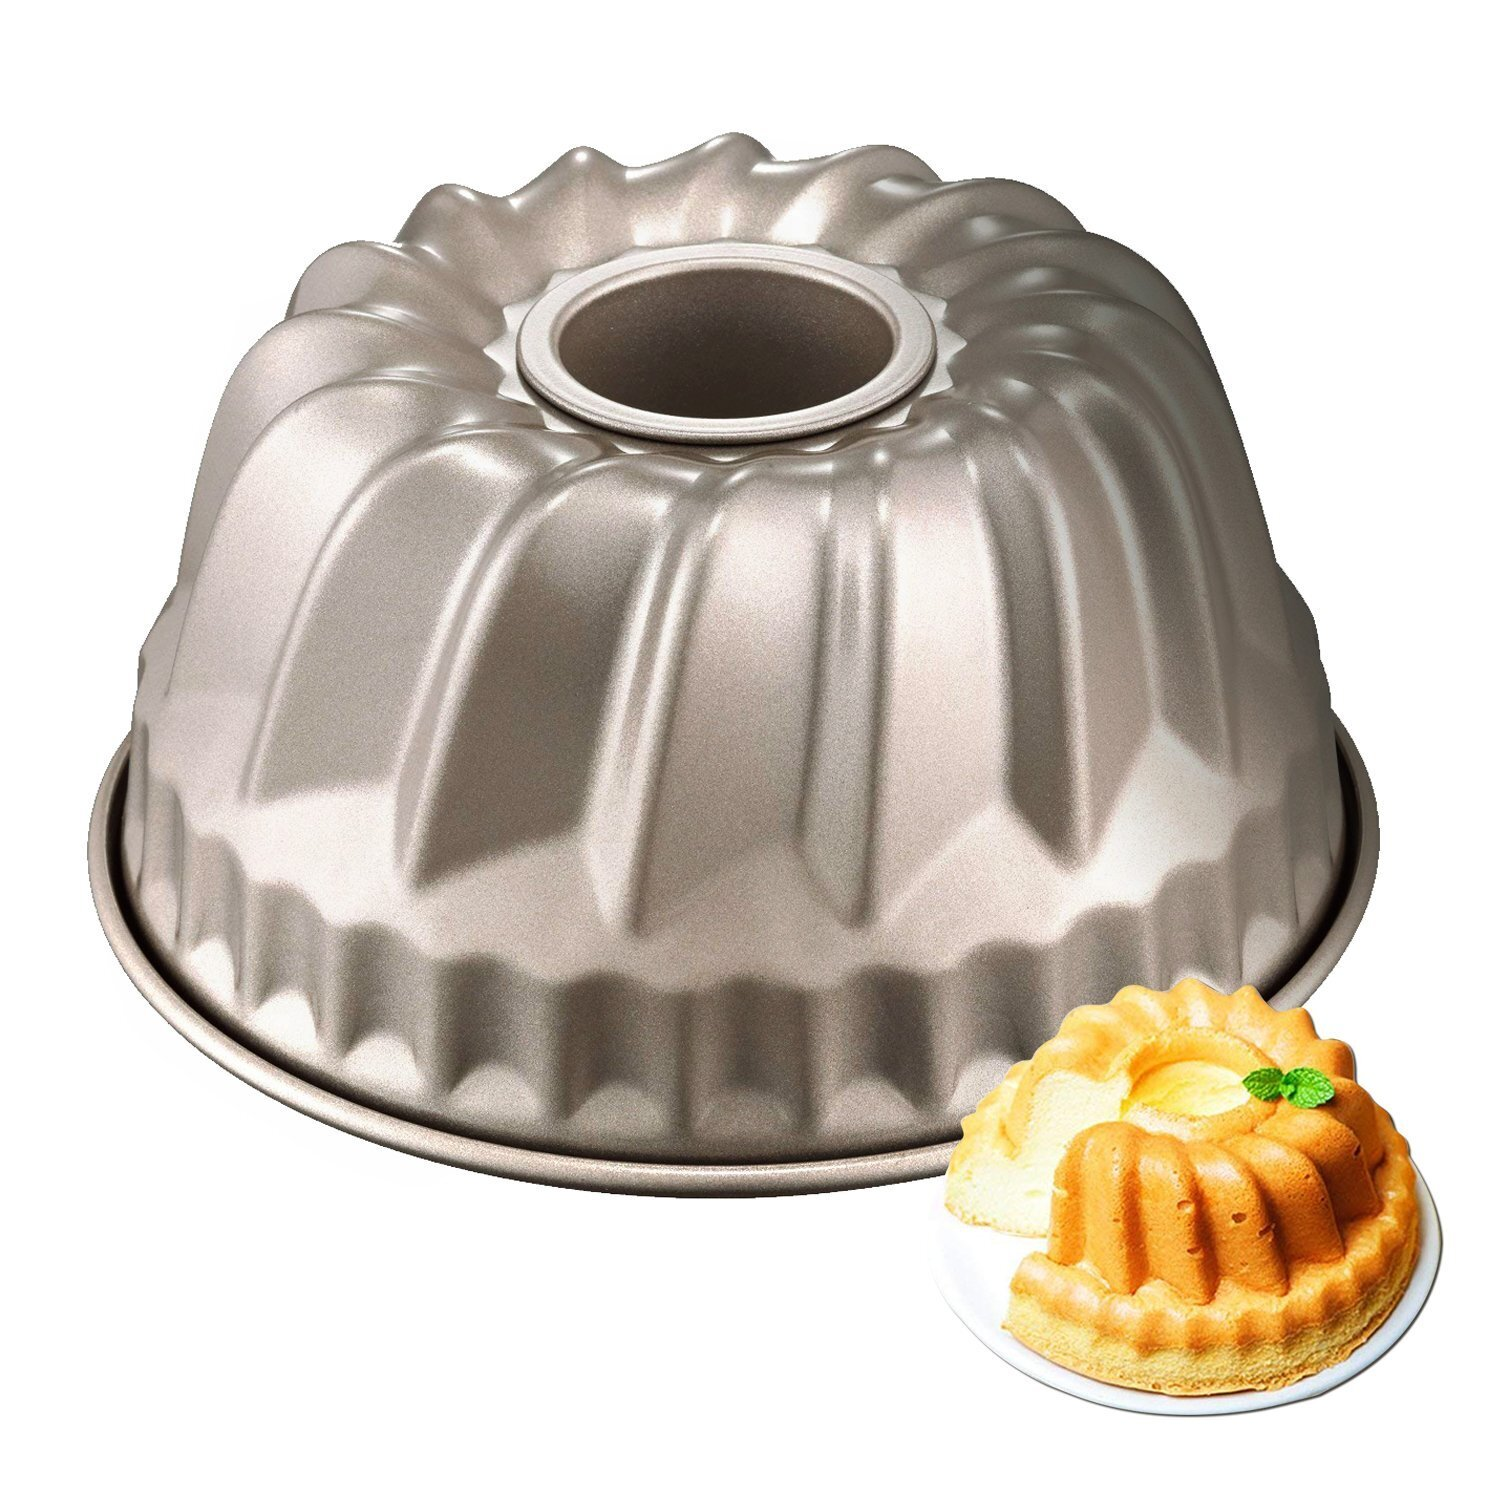 6 Inch Non-stick Bunt Jelly Pudding Cake Pan Mould